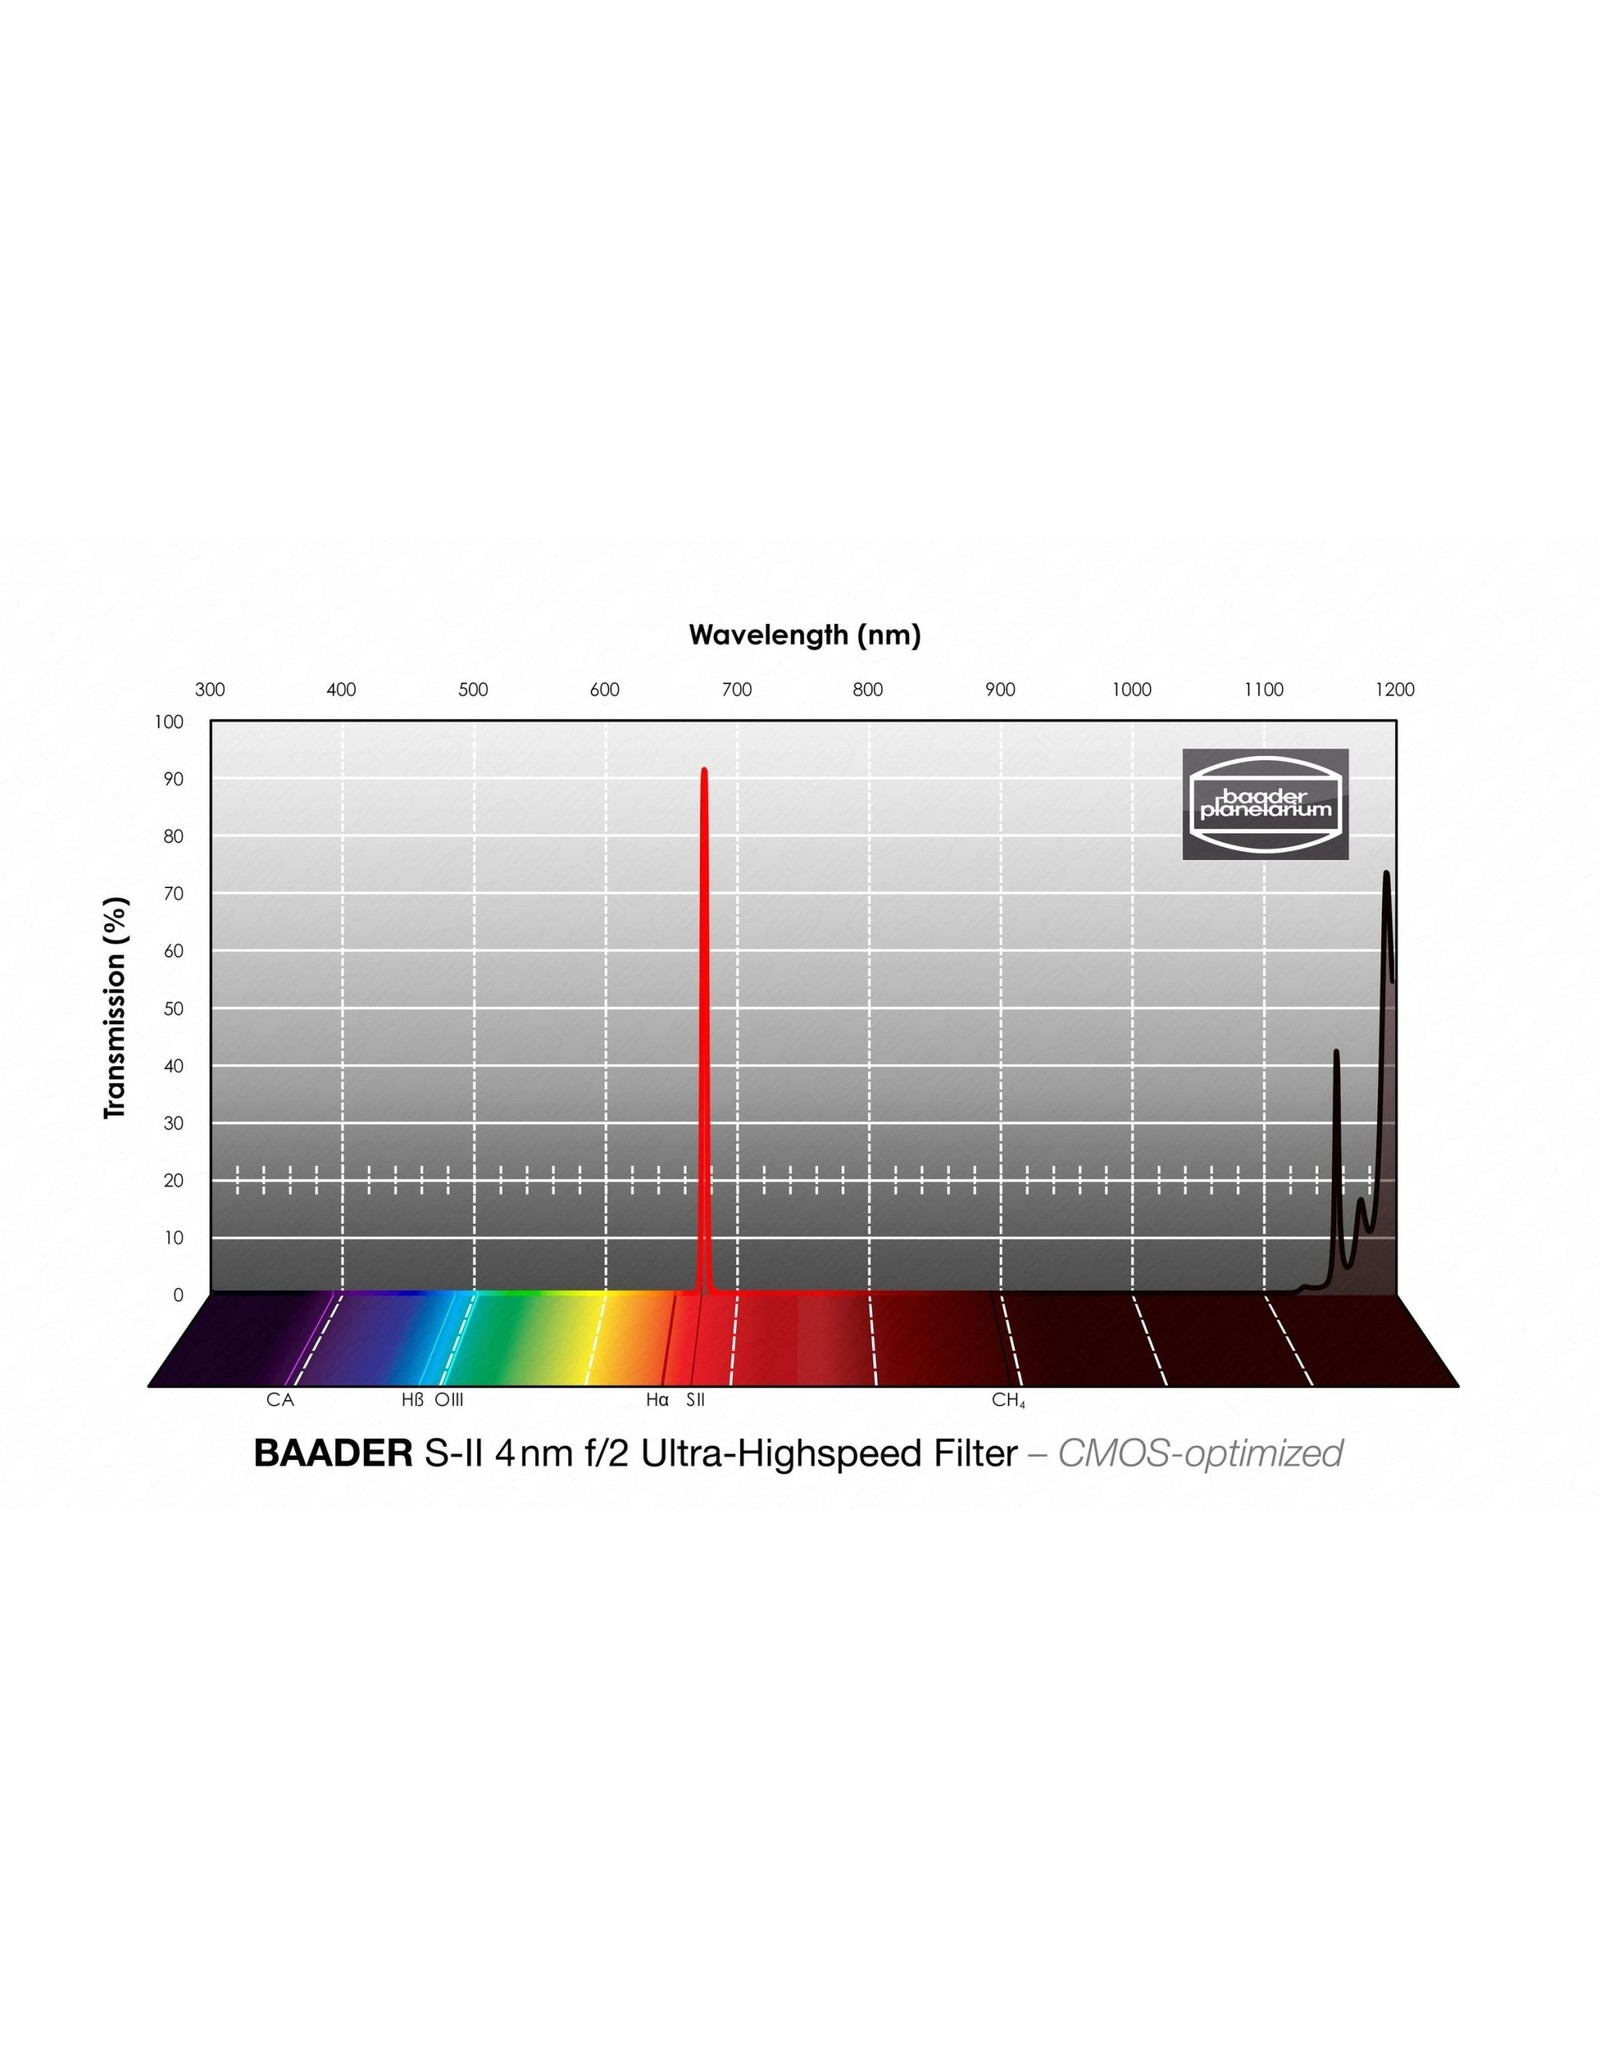 Baader Planetarium Baader 4nm f/2 Ultra-Highspeed Filters – CMOS-optimized (Specify Size)